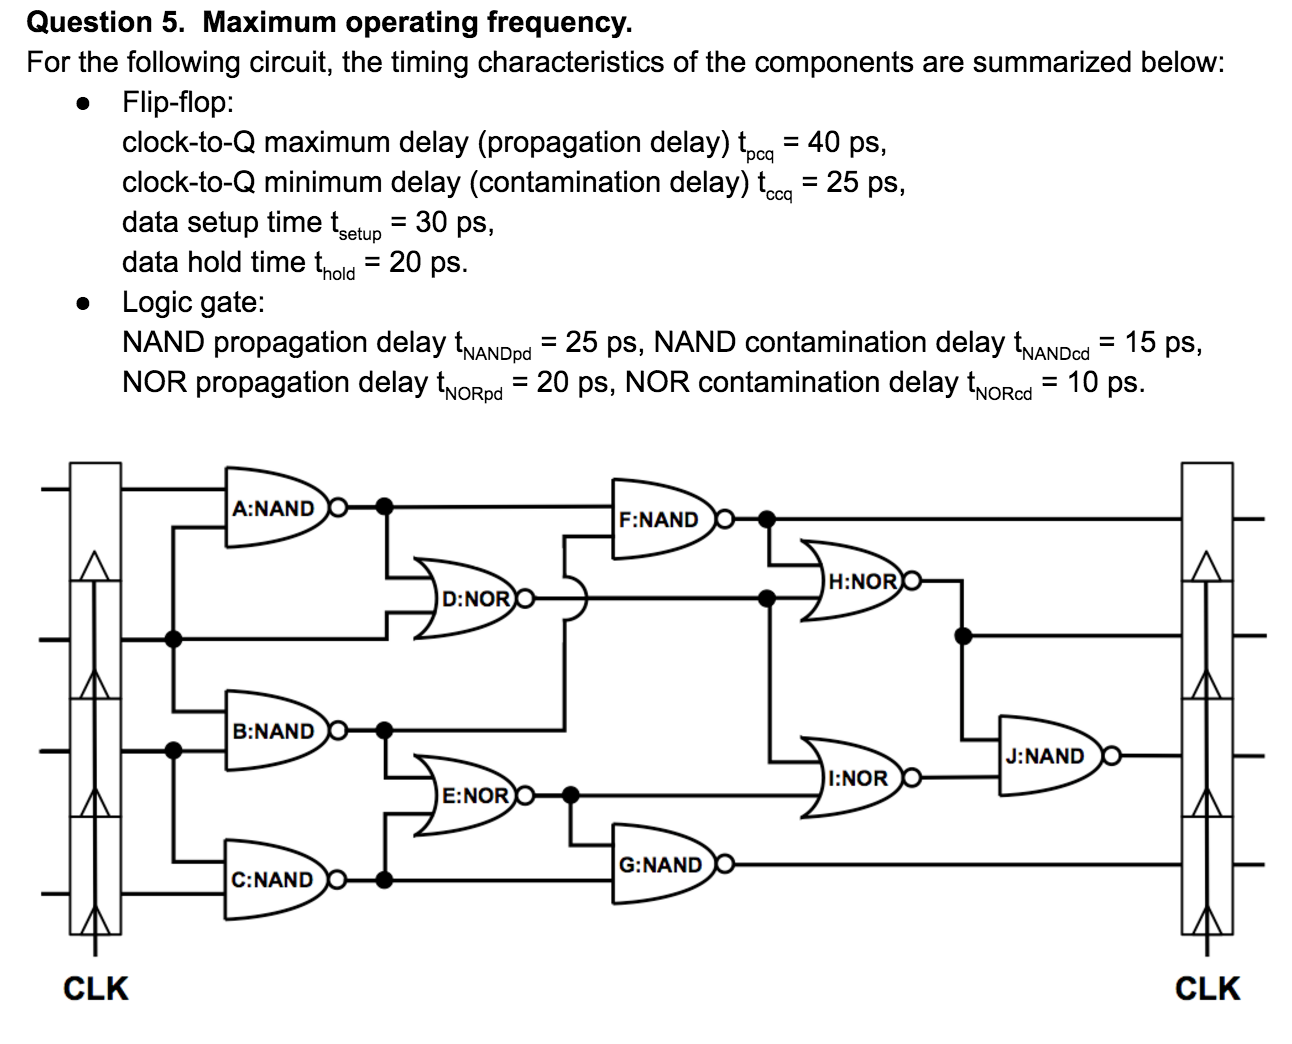 Question 5. Maximum operating frequency For the following circuit, the timing characteristics of the components are summarized below: . Flip-flop pcq clock-to-Q minimum delay (contamination delay) t-25 ps, data setup time t- 30 ps, data hold time thold 20 ps ccq setup » Logic gate: NAND propagation delay NANDp NOR propagation delay thoRod NAND propagation delay tNANDpd 25 ps, N ,-20 ps. NOR contamination delay tNORd-10 ps ,-25 ps. NAND contamination delay tNANDod-15 ps. NORp A:NAND F:NAND H:NOR D:NOR B:NAND J:NAND I:NOR E: NOR G:NAND C:NAND CLK CLK